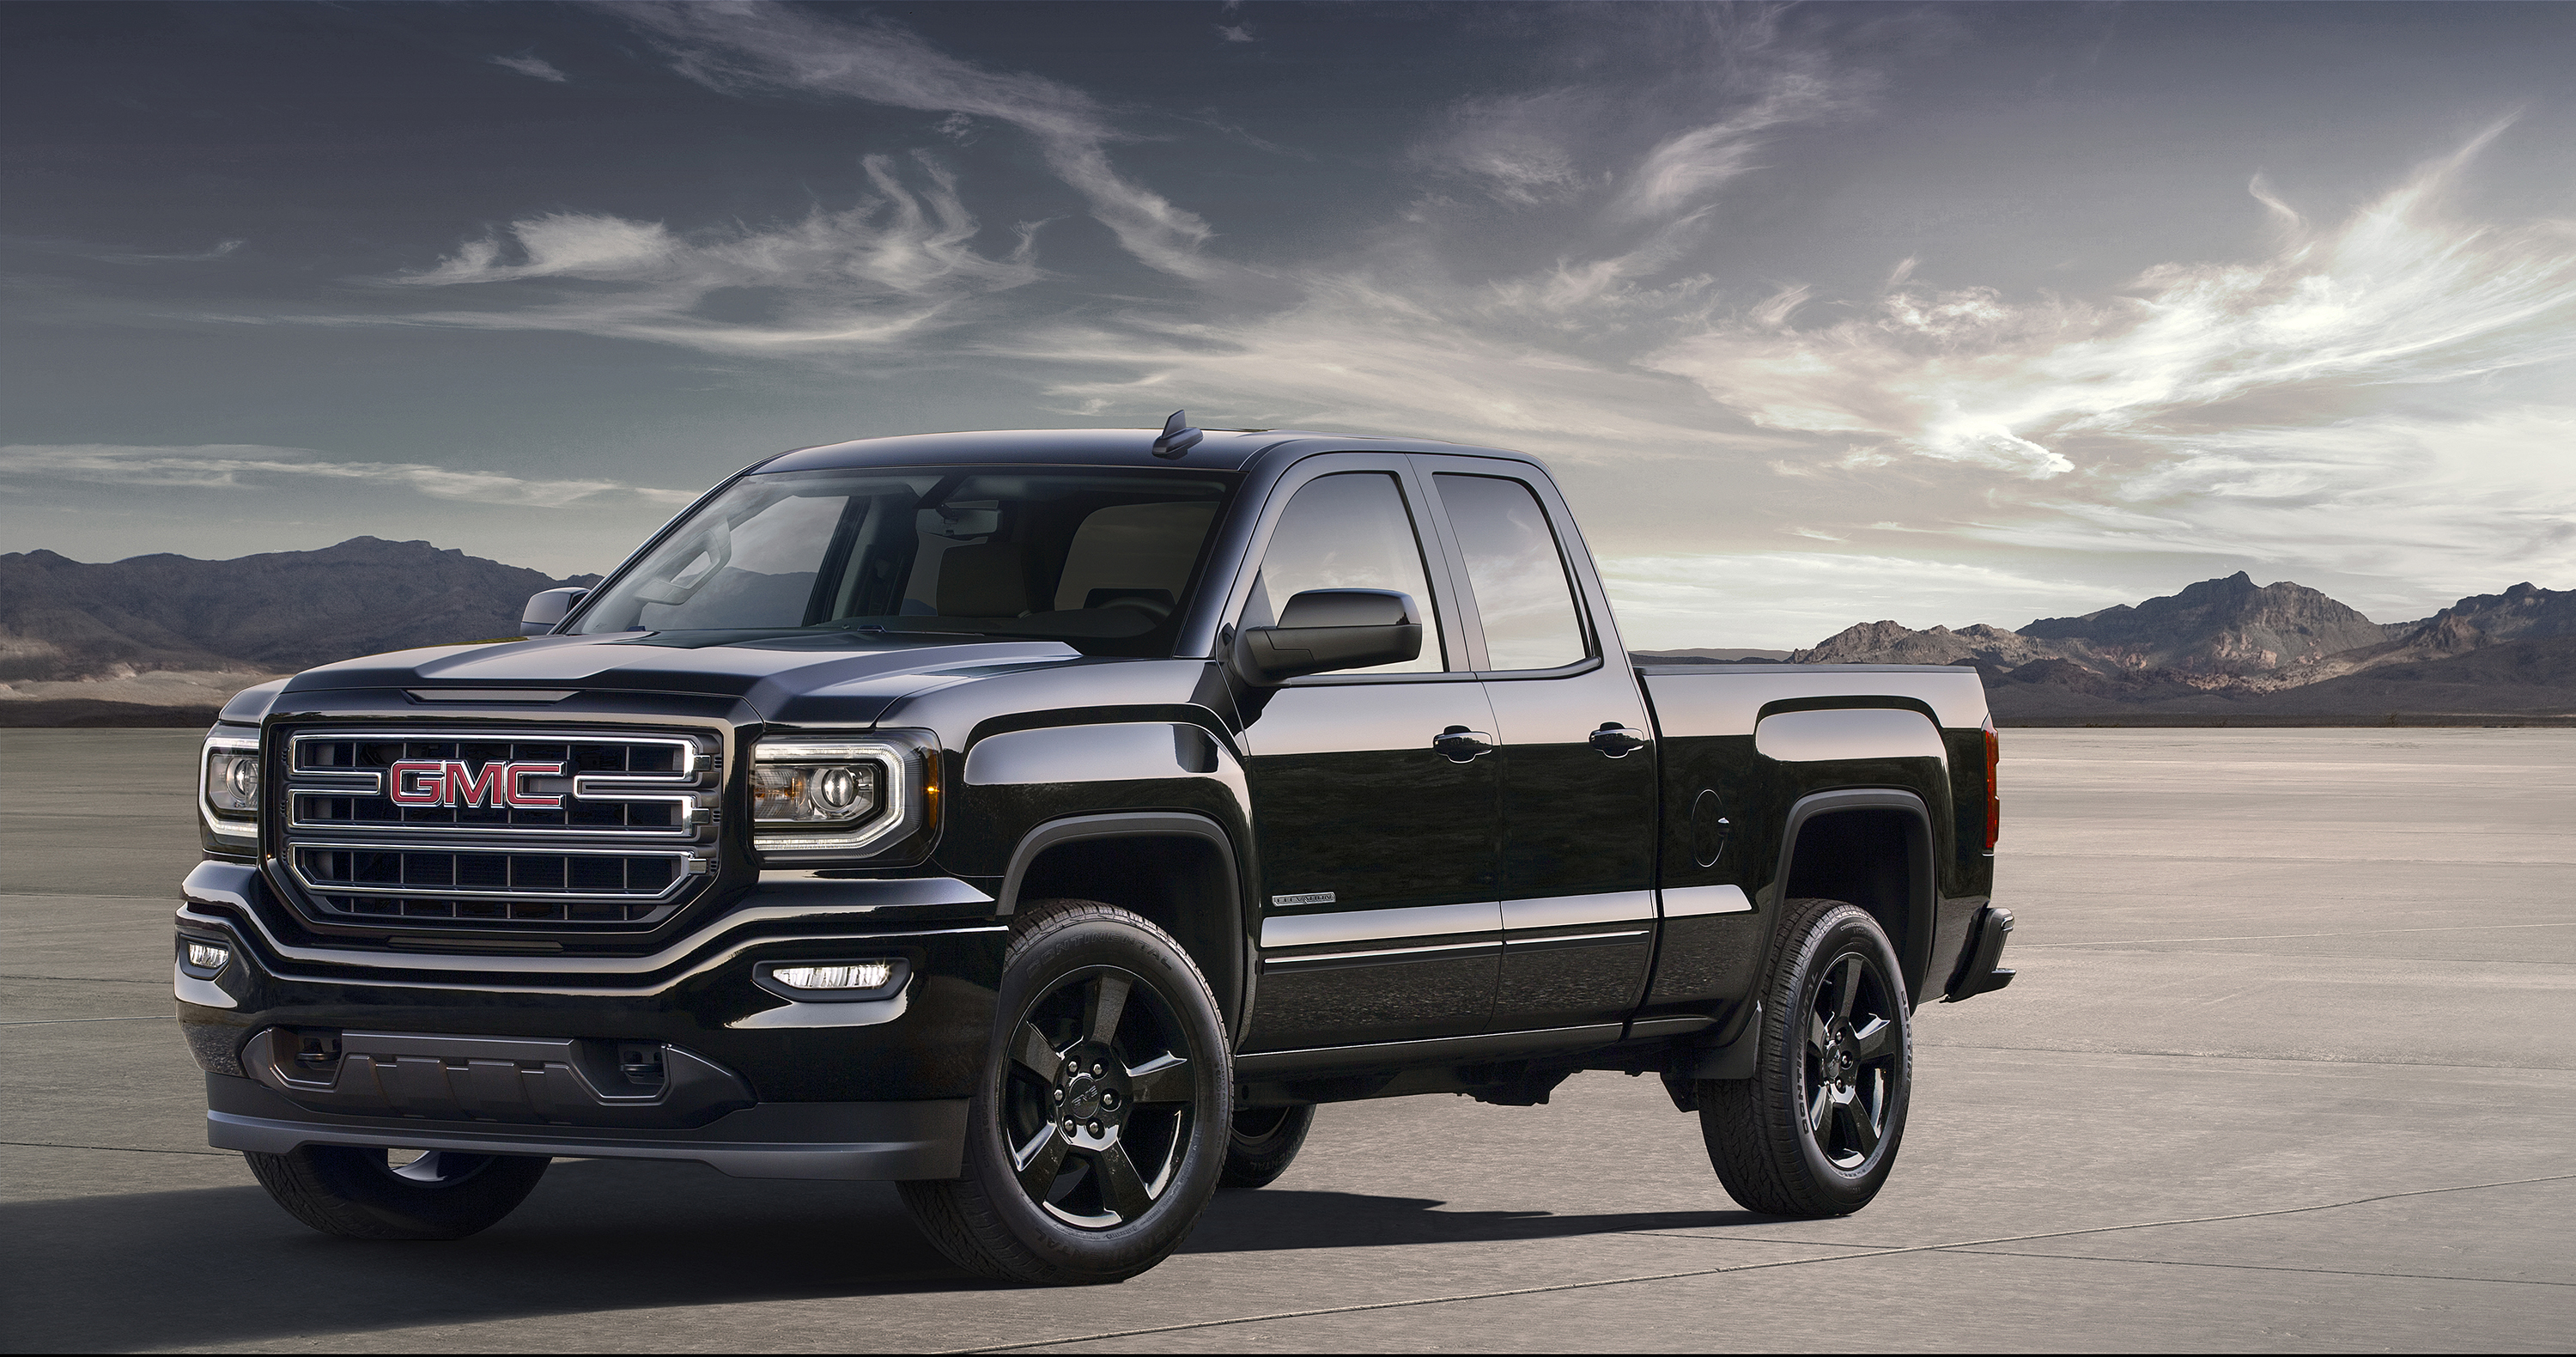 2016 GMC Sierra Elevation Edition is an Appropriate Pickup Truck for a ...